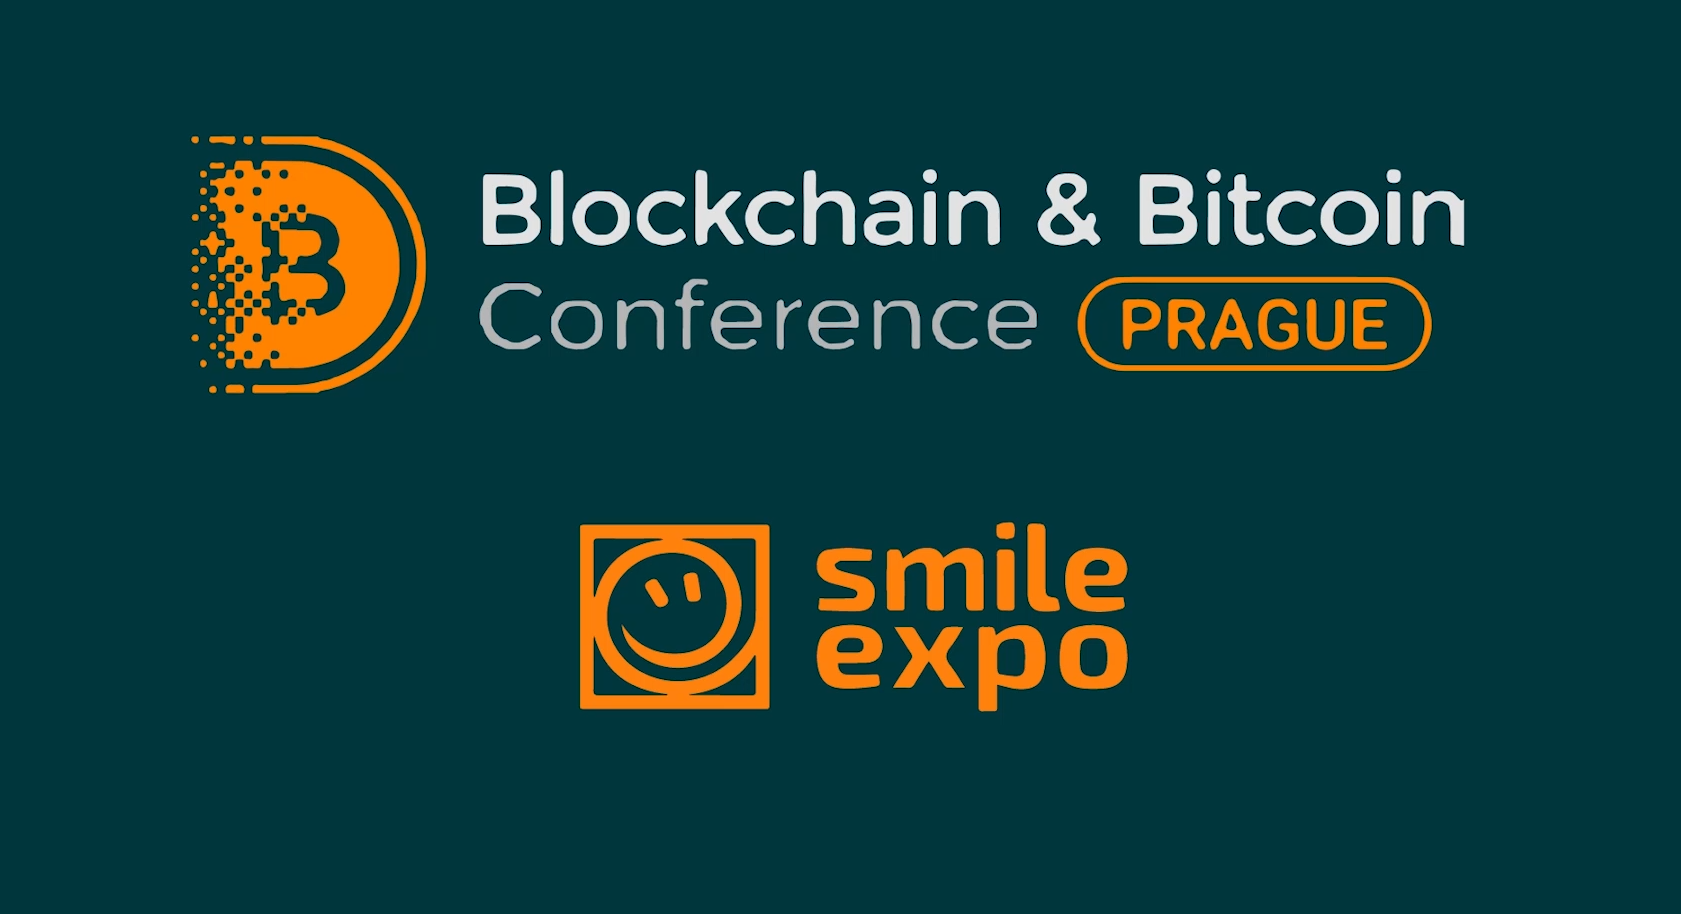 Adel ▲ Conference ▲ Bitcoin & Blockchain Conference, Prague